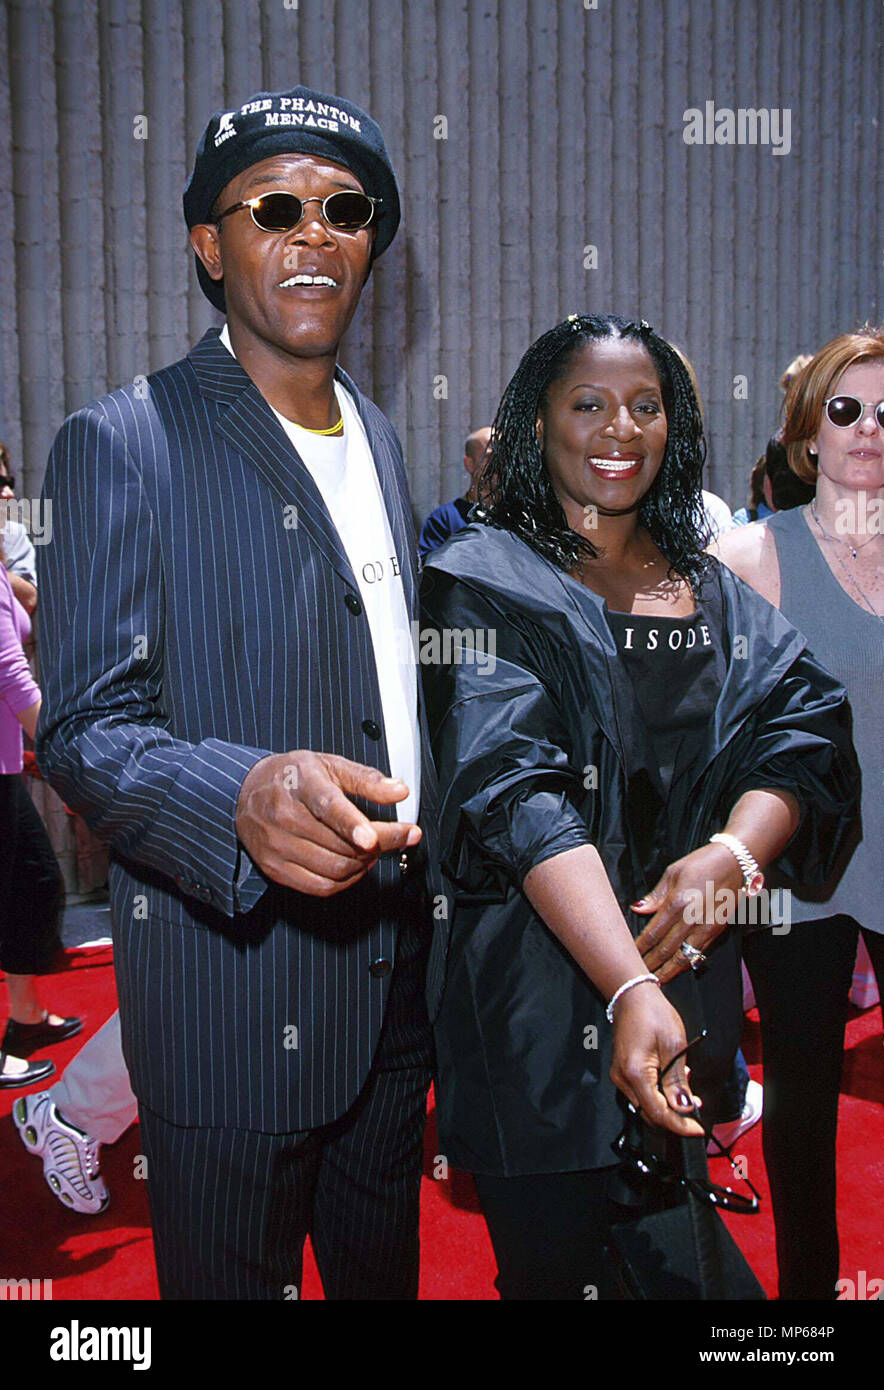 Samuel Jackson Daughter High Resolution Stock Photography And Images Alamy